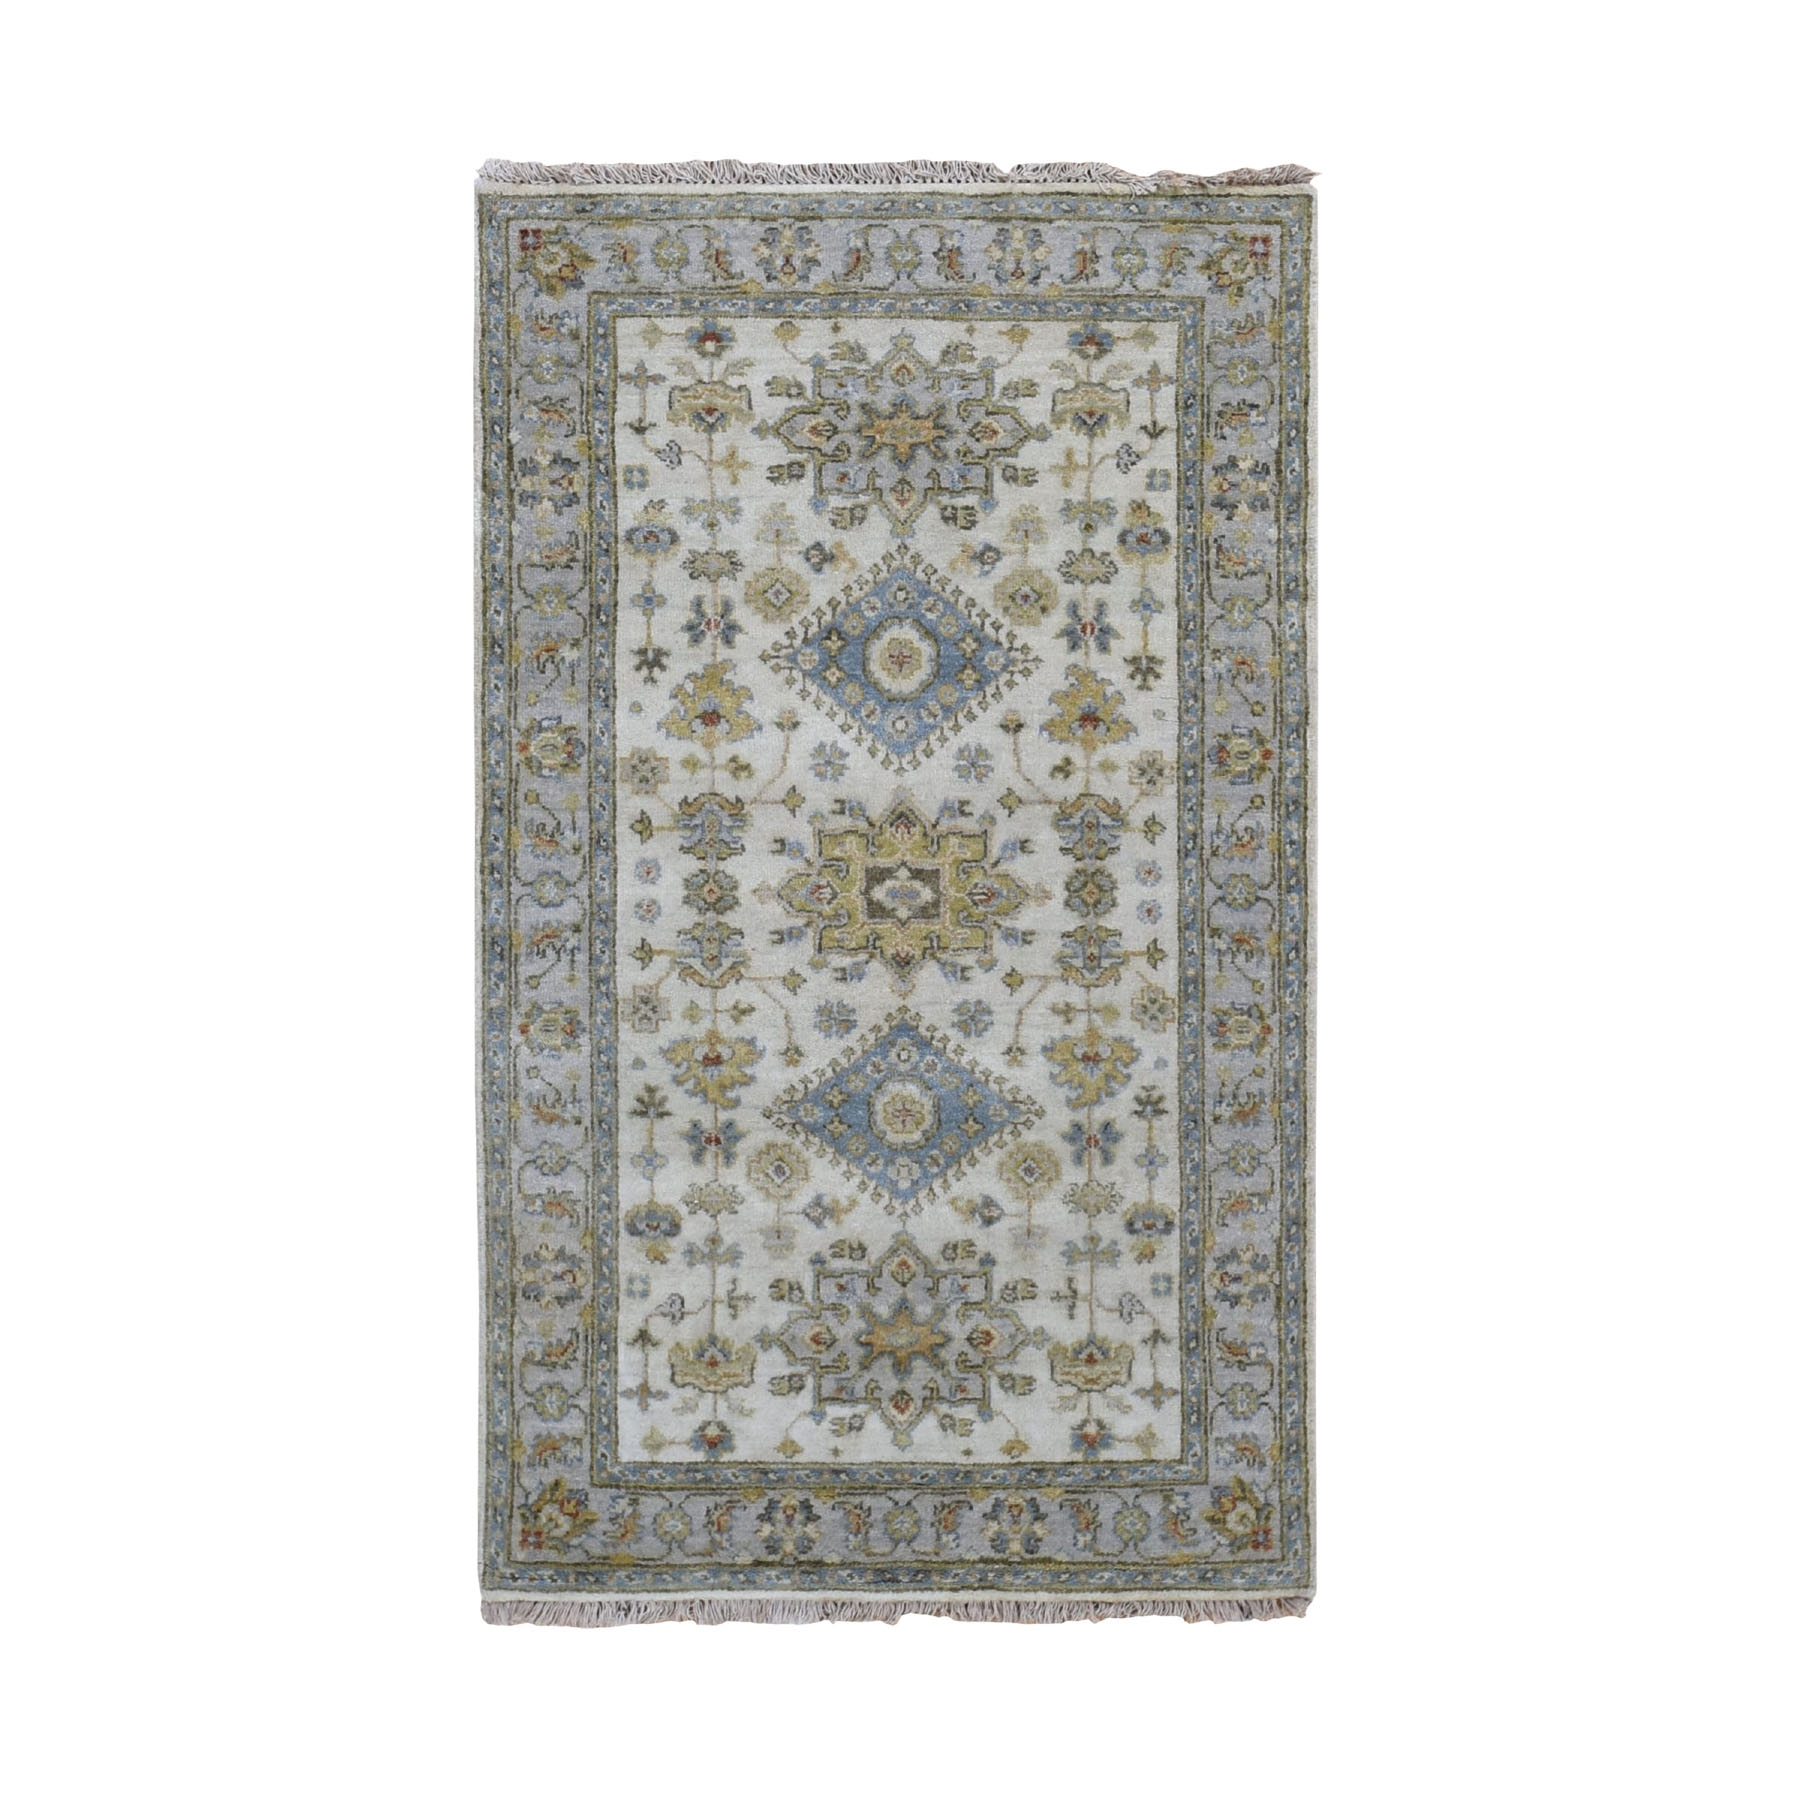 "3'x5'1"" Ivory Karajeh Design Pure Wool Hand Knotted Oriental Rug"